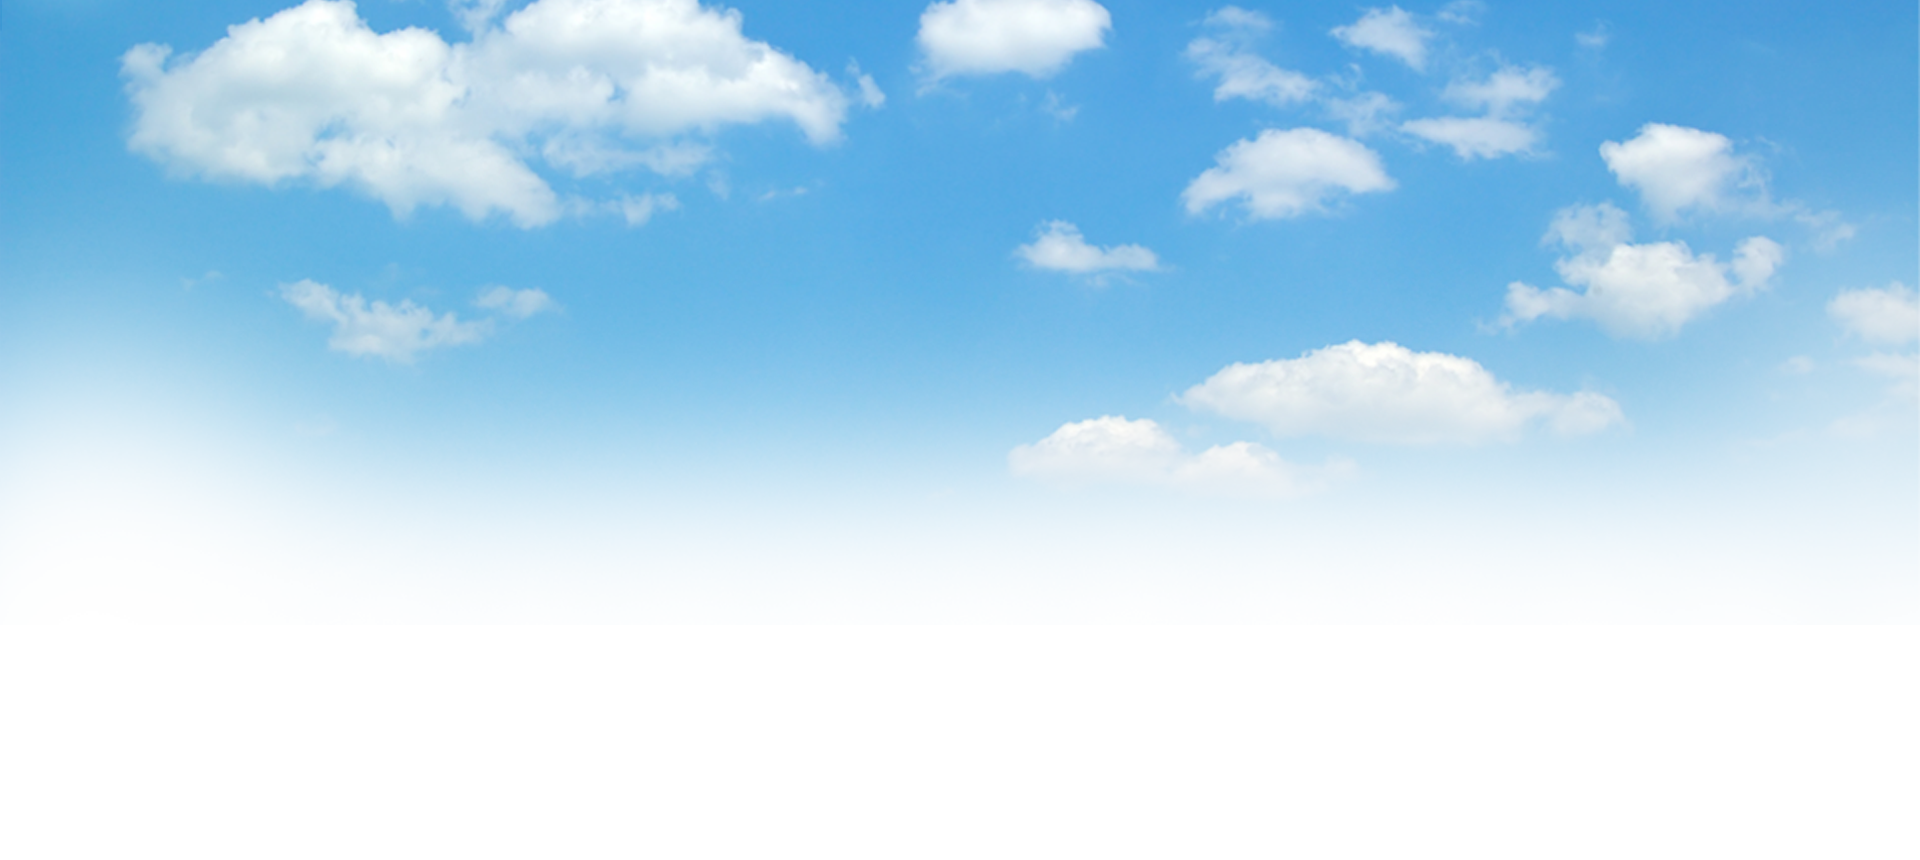 Blue sky png clipart images gallery for free download.